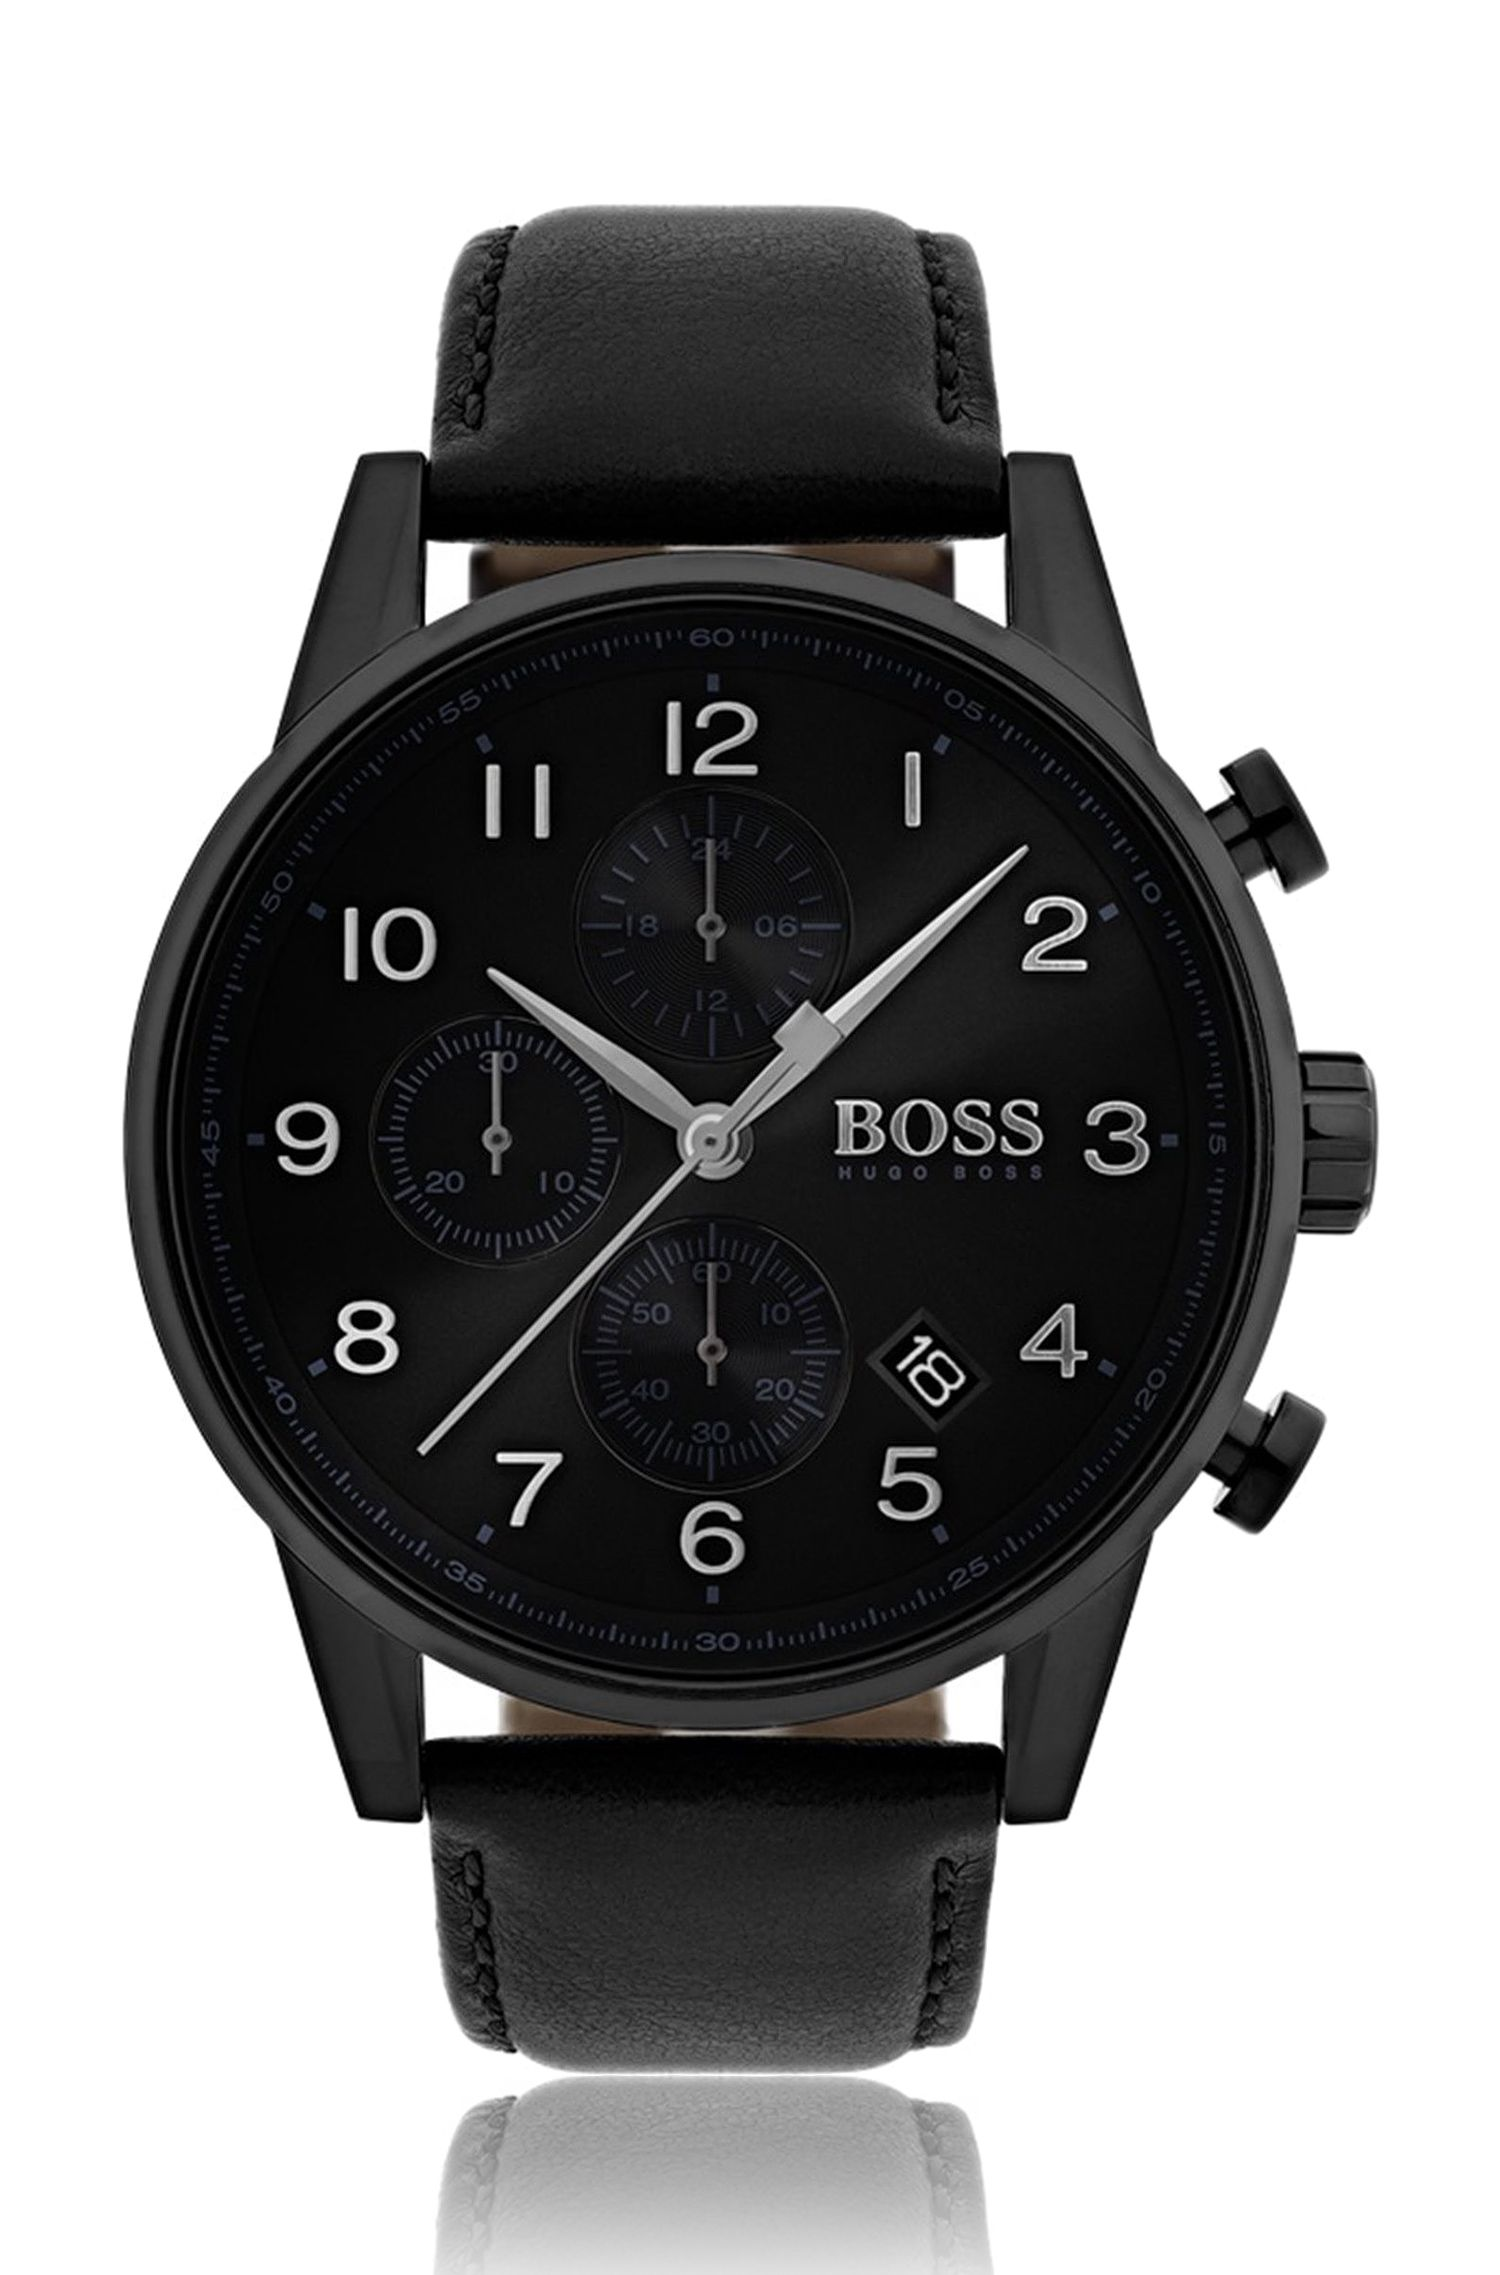 Three-hand watch with sunray brushed dial and leather strap, Black